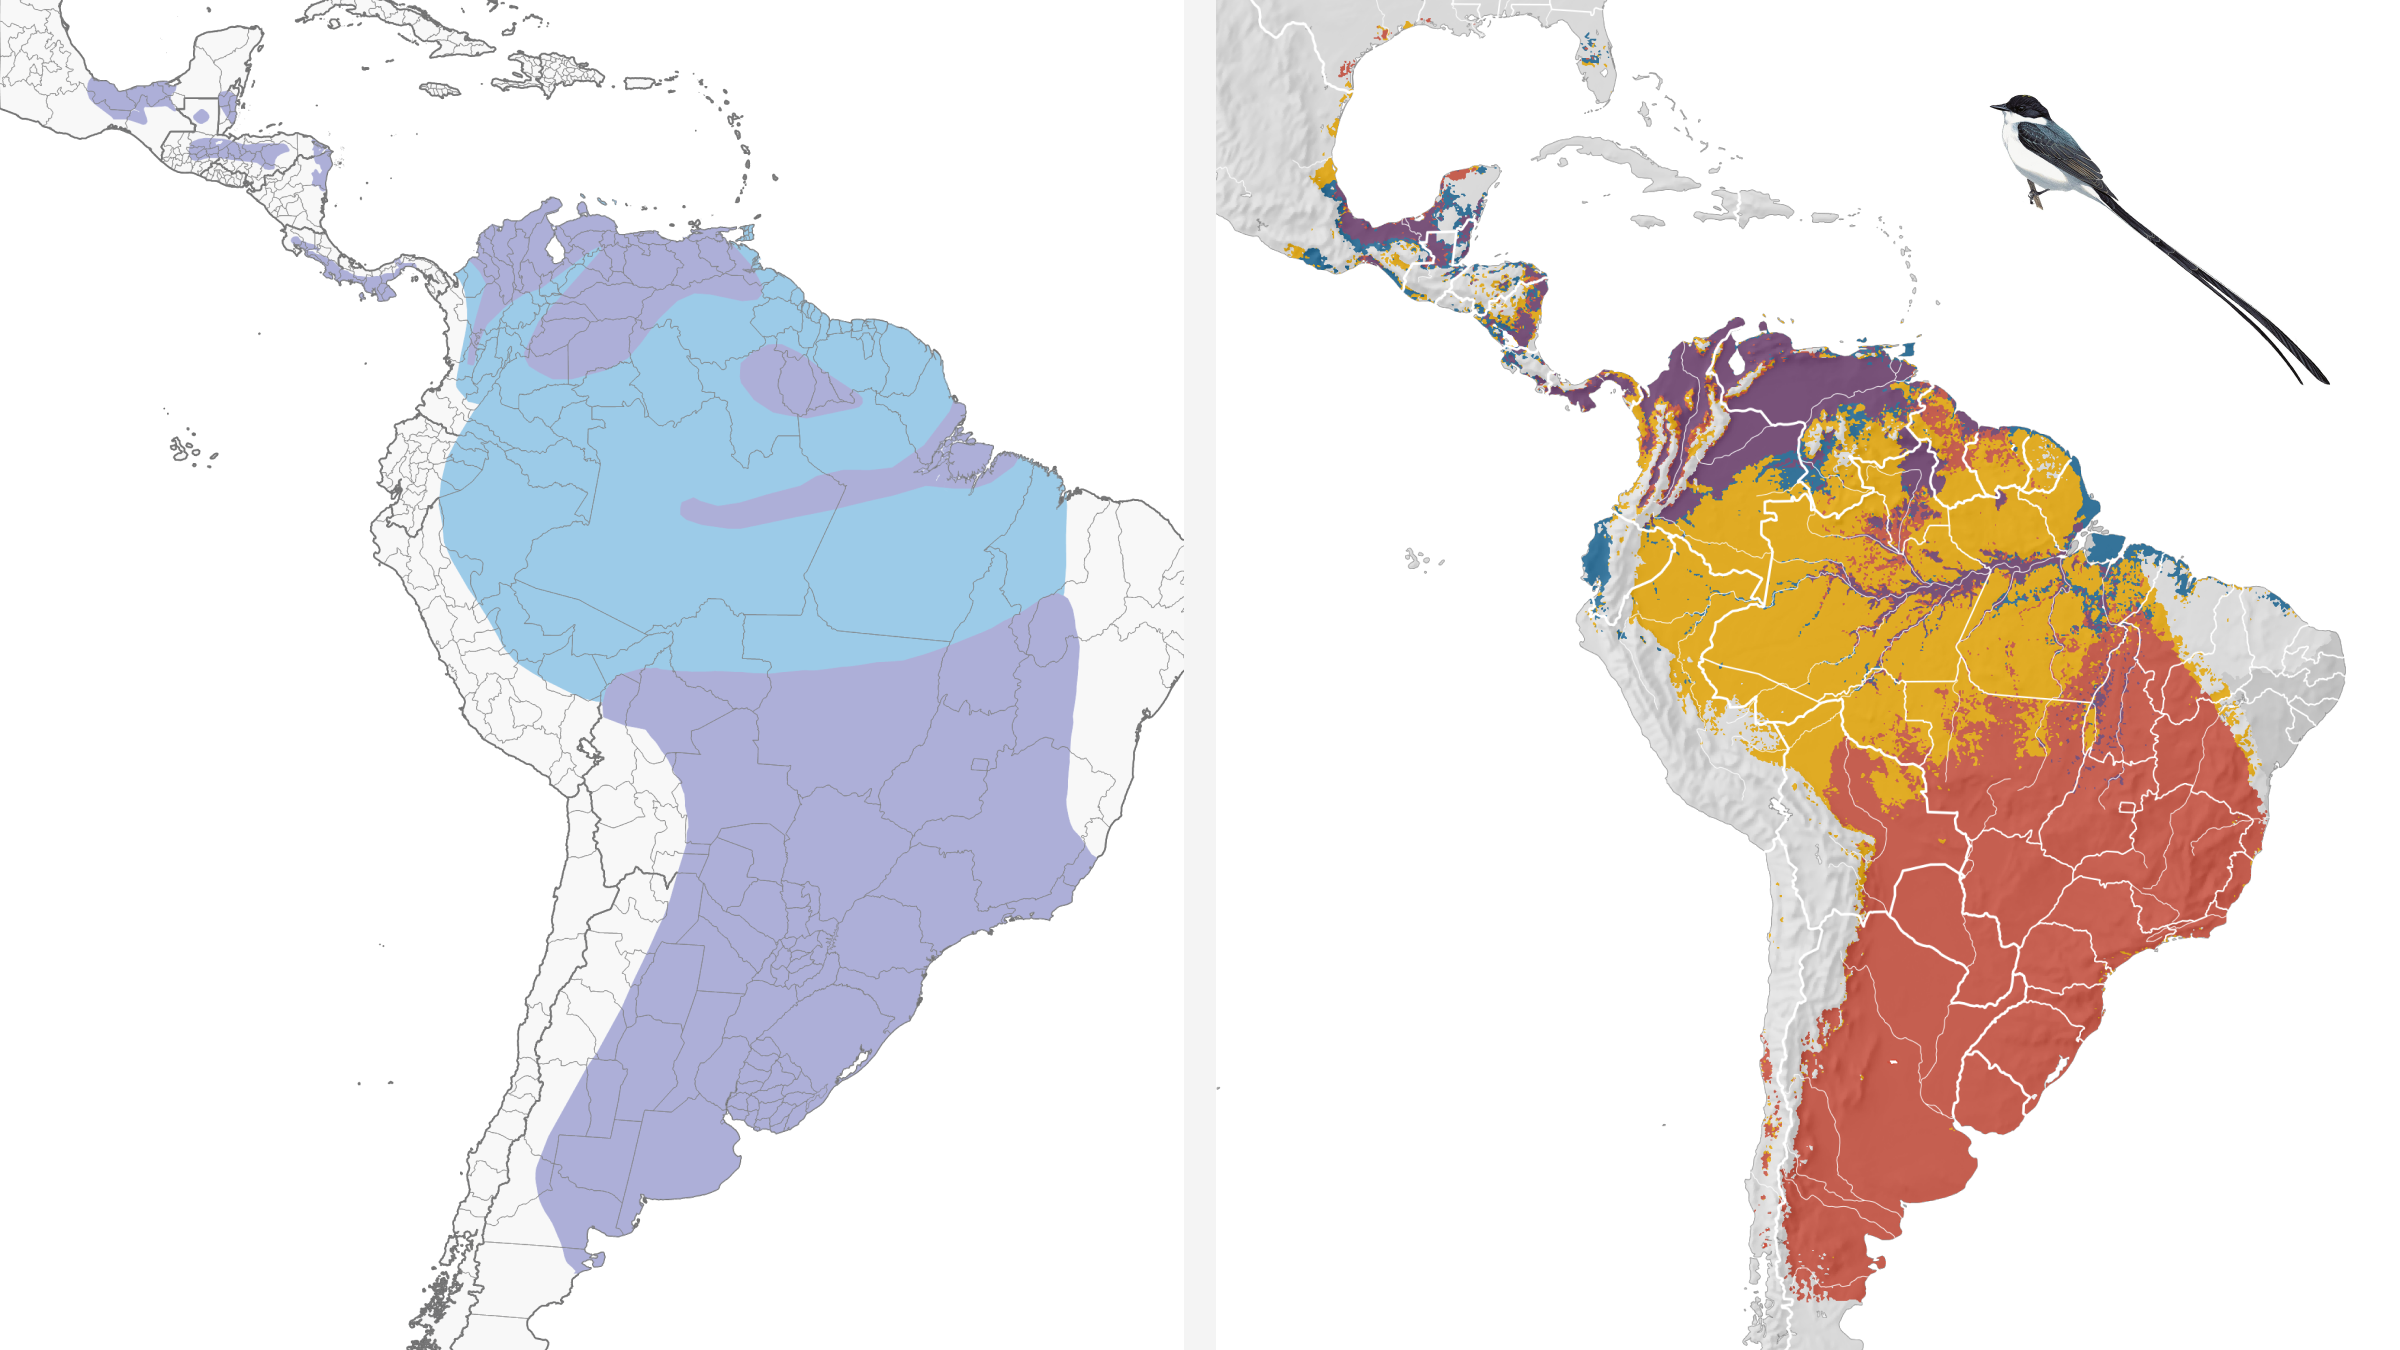 Side-by-side comparison of old and new Fork-tailed Flycatcher range maps